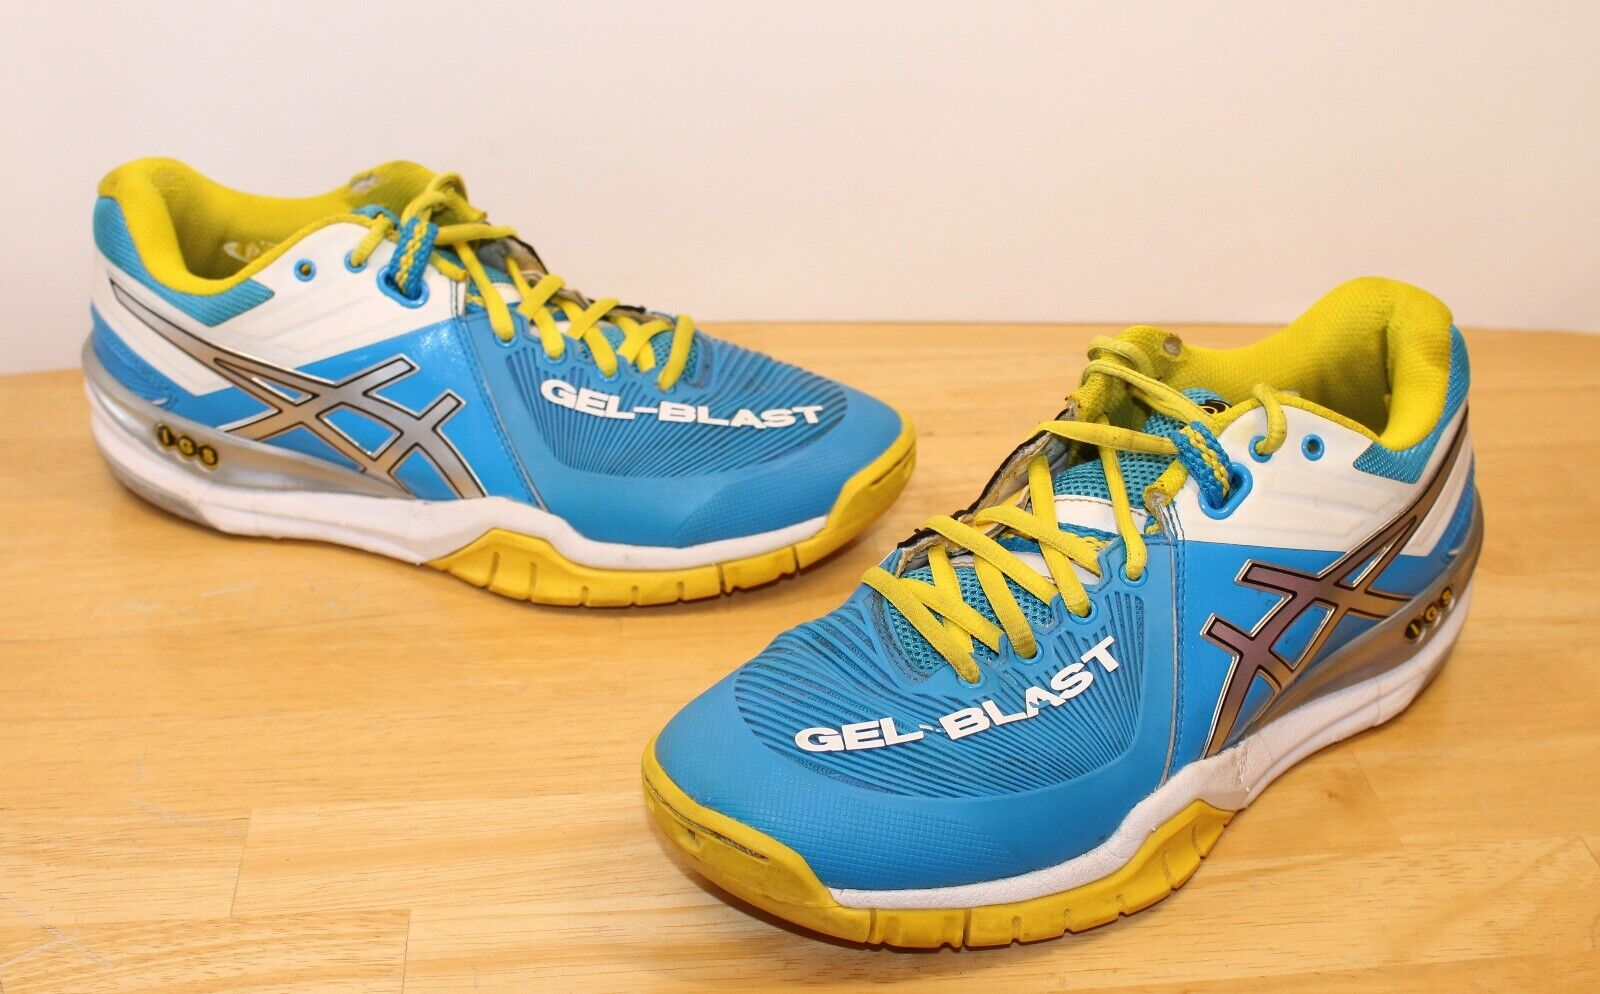 Women Asics shoes 9 Sneakers IGS Gel-Blast E463Y Trainer Indoor Court Volleyball